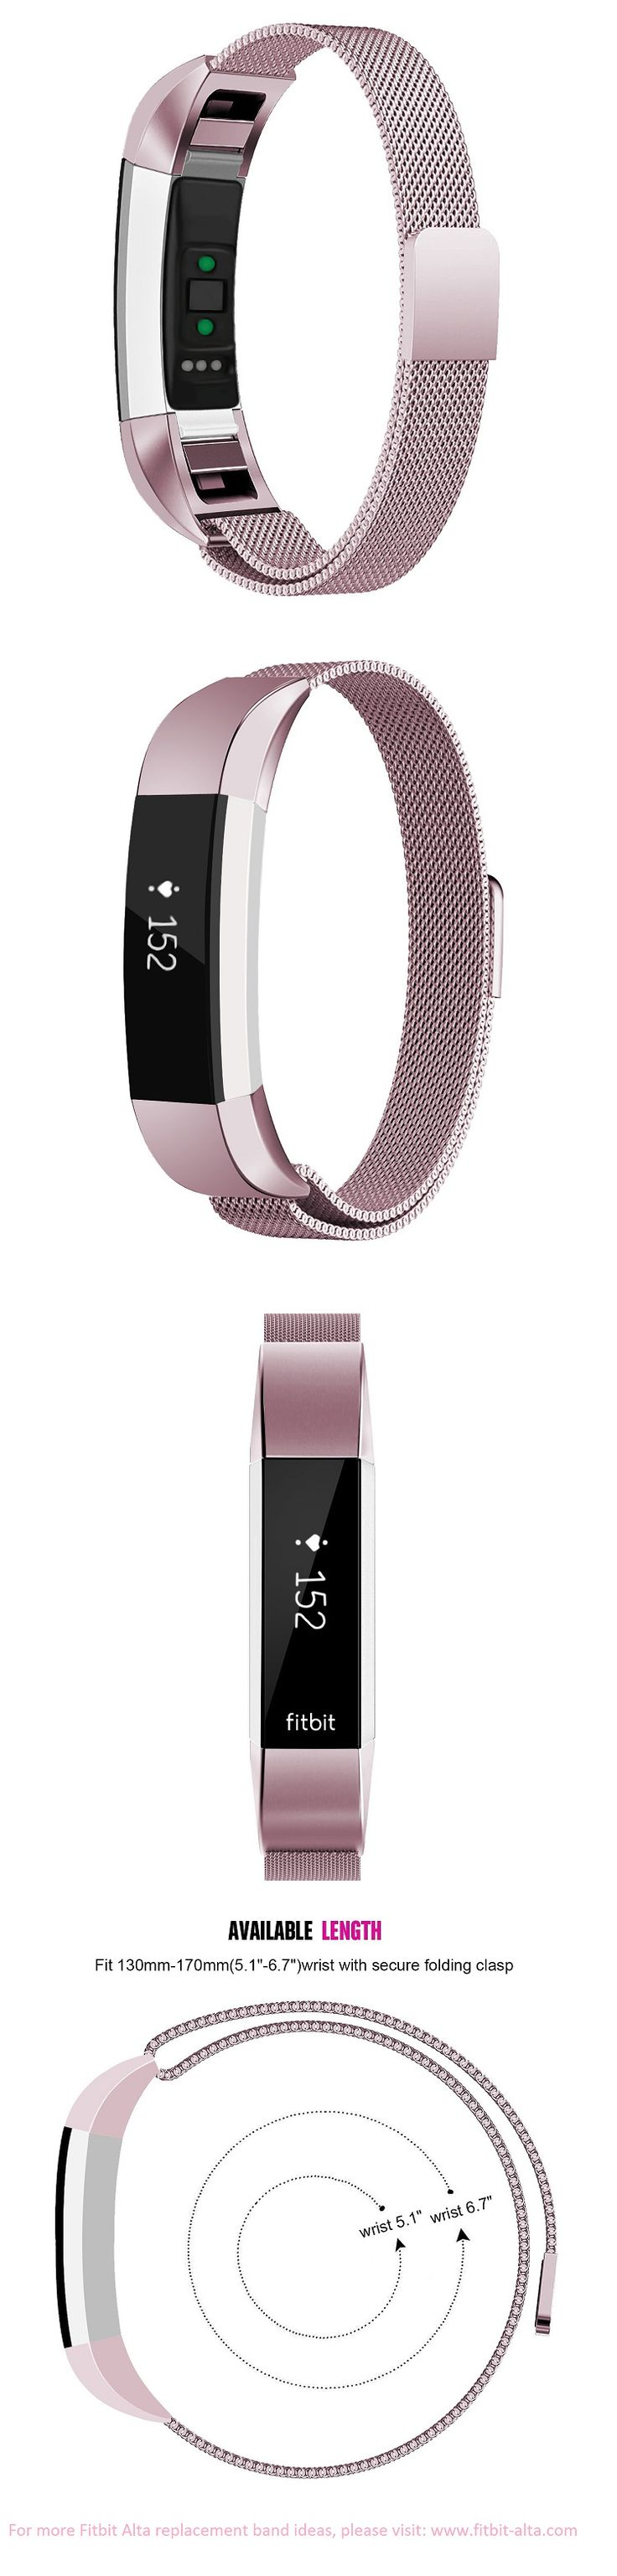 Oitom Fitbit Alta HR Accessory Bands and Fitbit Alta Metal Bands - Sakura Pink